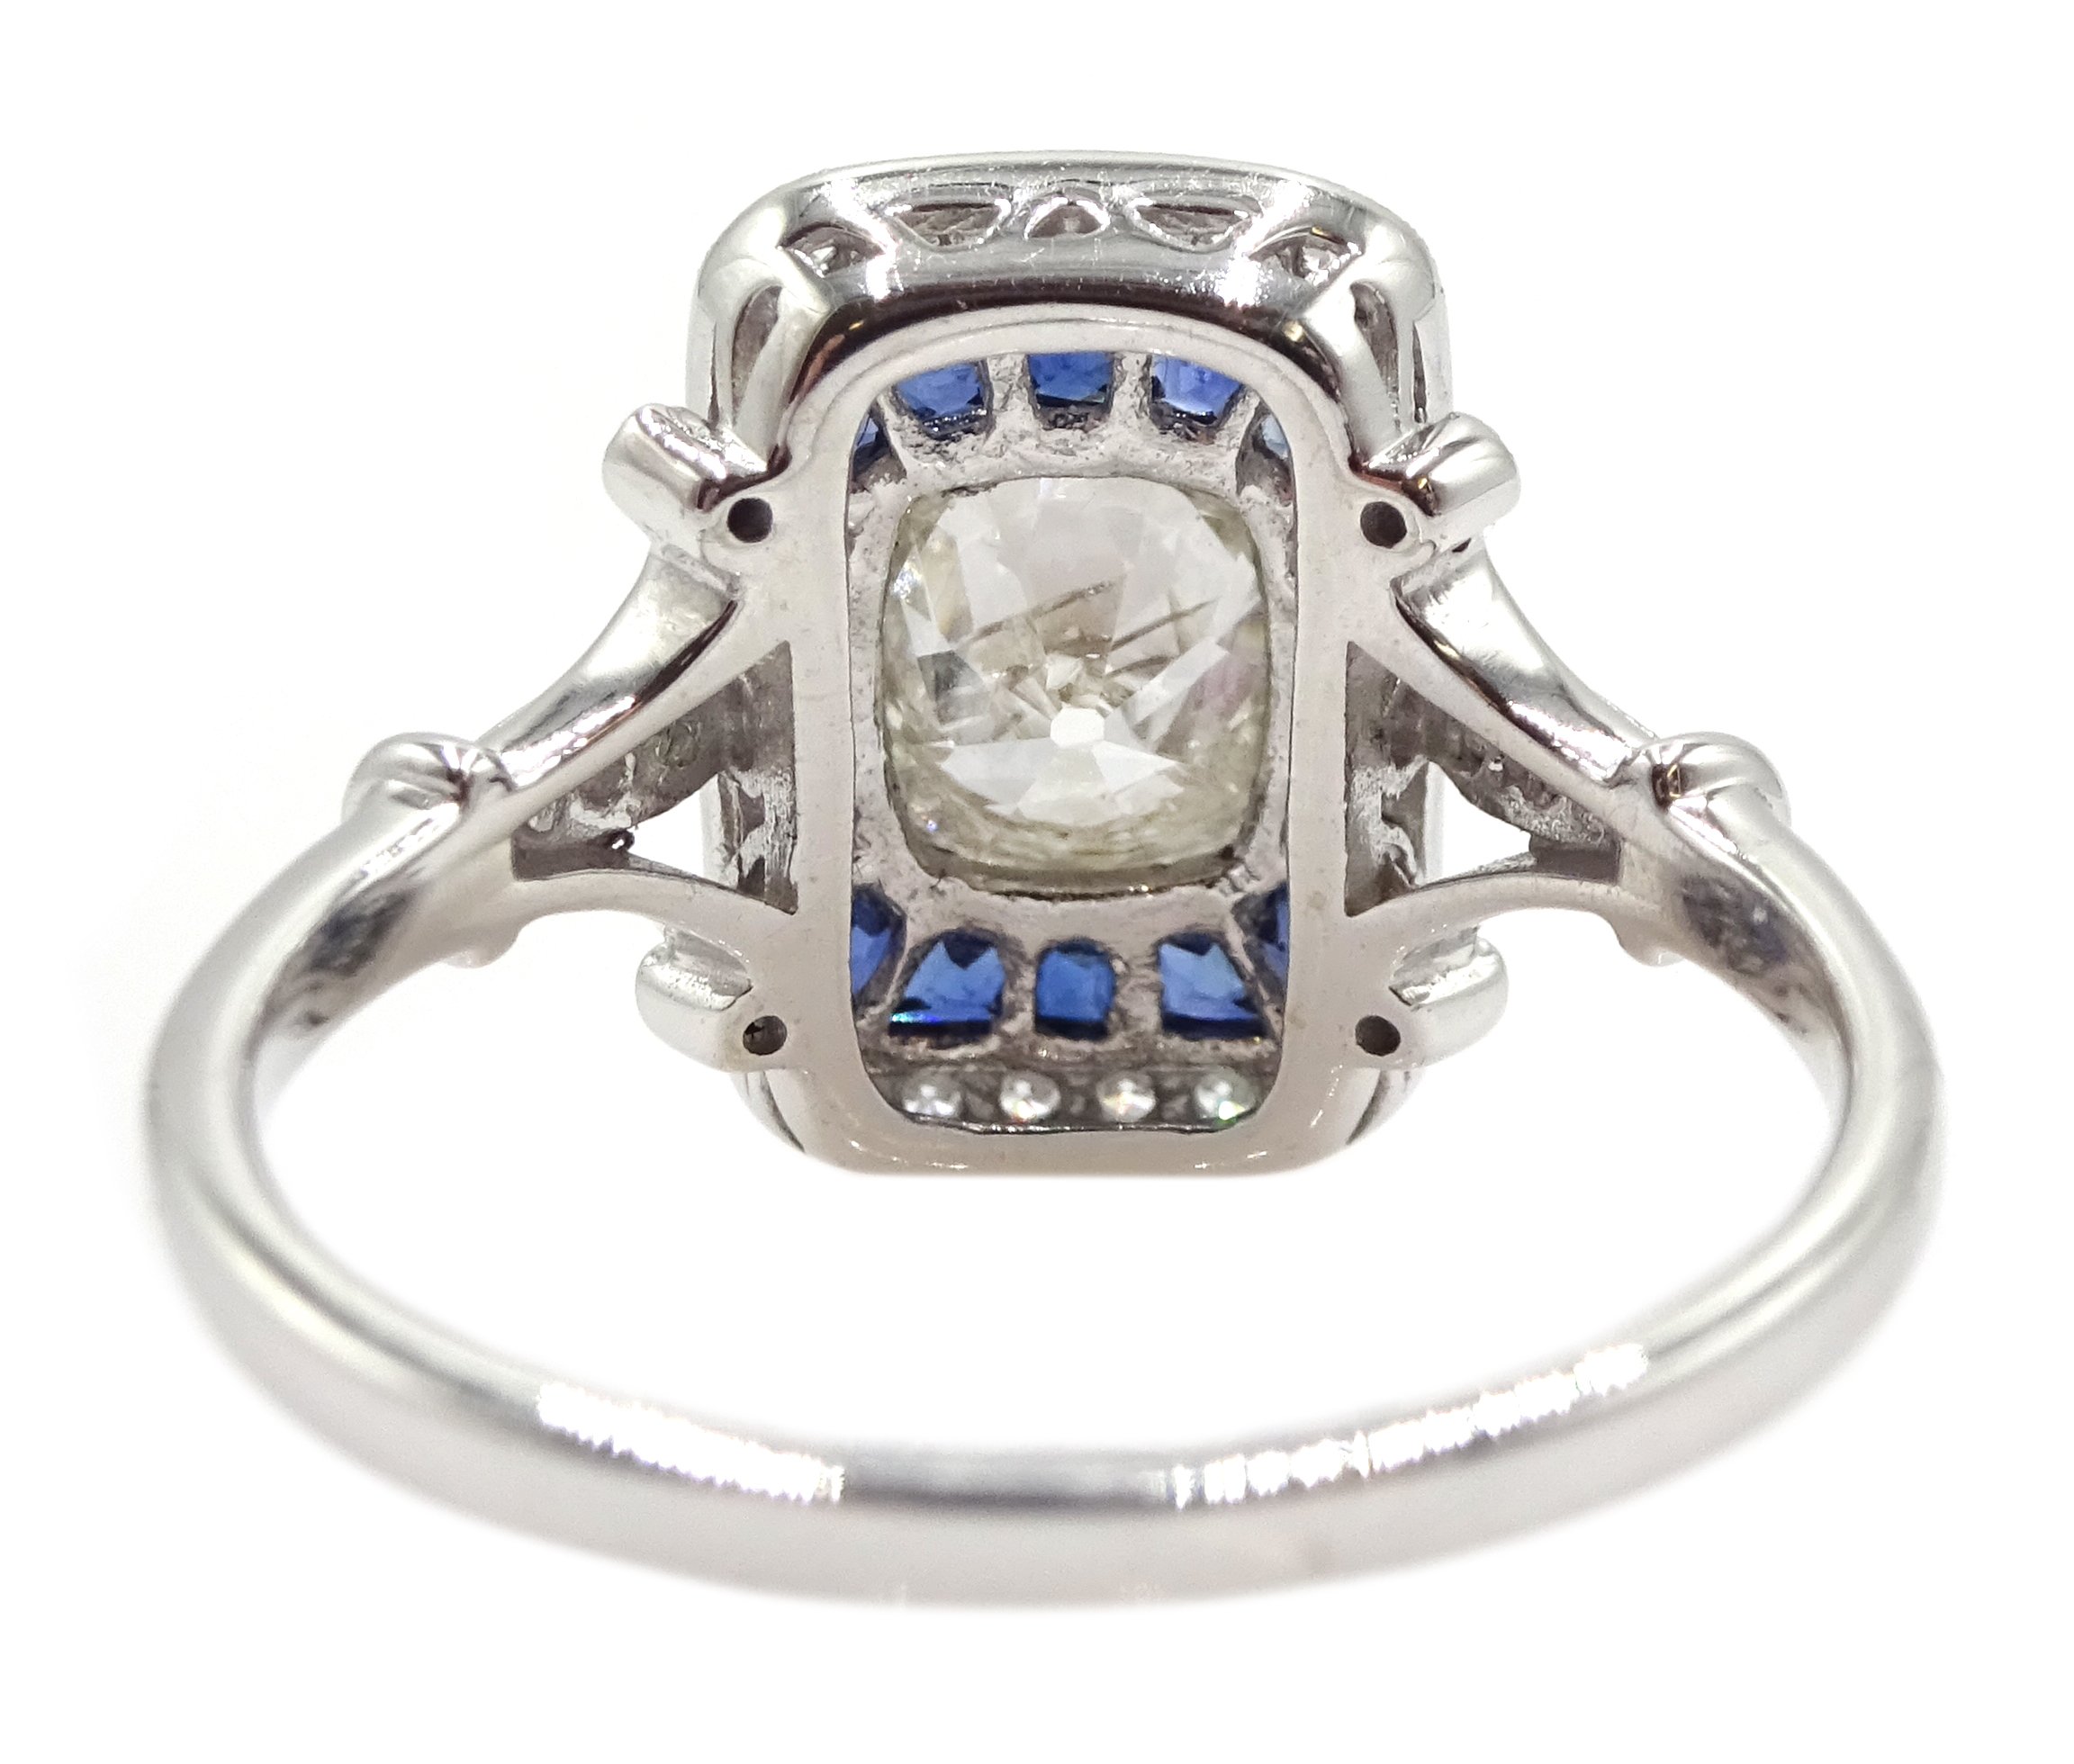 Art Deco style 18ct white gold, sapphire and diamond ring, central old cut diamond surrounded by - Image 6 of 6